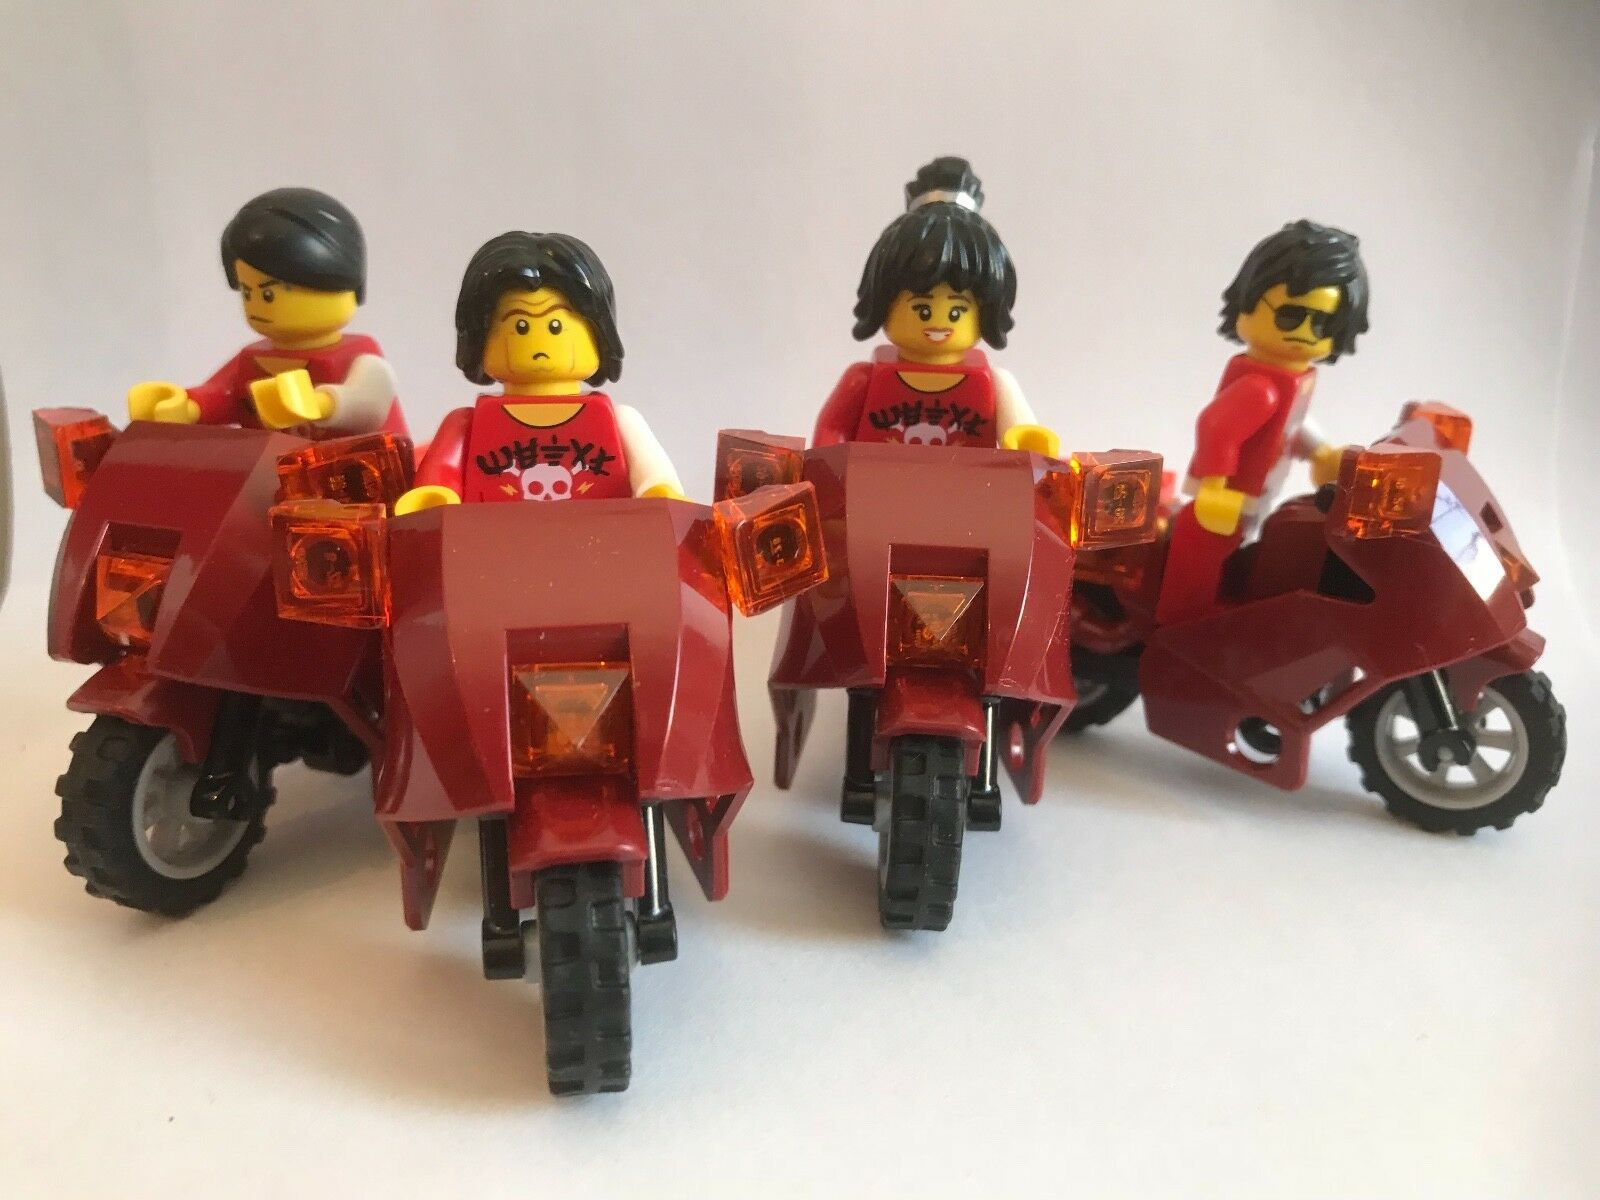 Lego parts only - MOTORCYCLE TOKYO GANG - 4 x DARK RED BIKE (6865) 4 MINIFIGURES